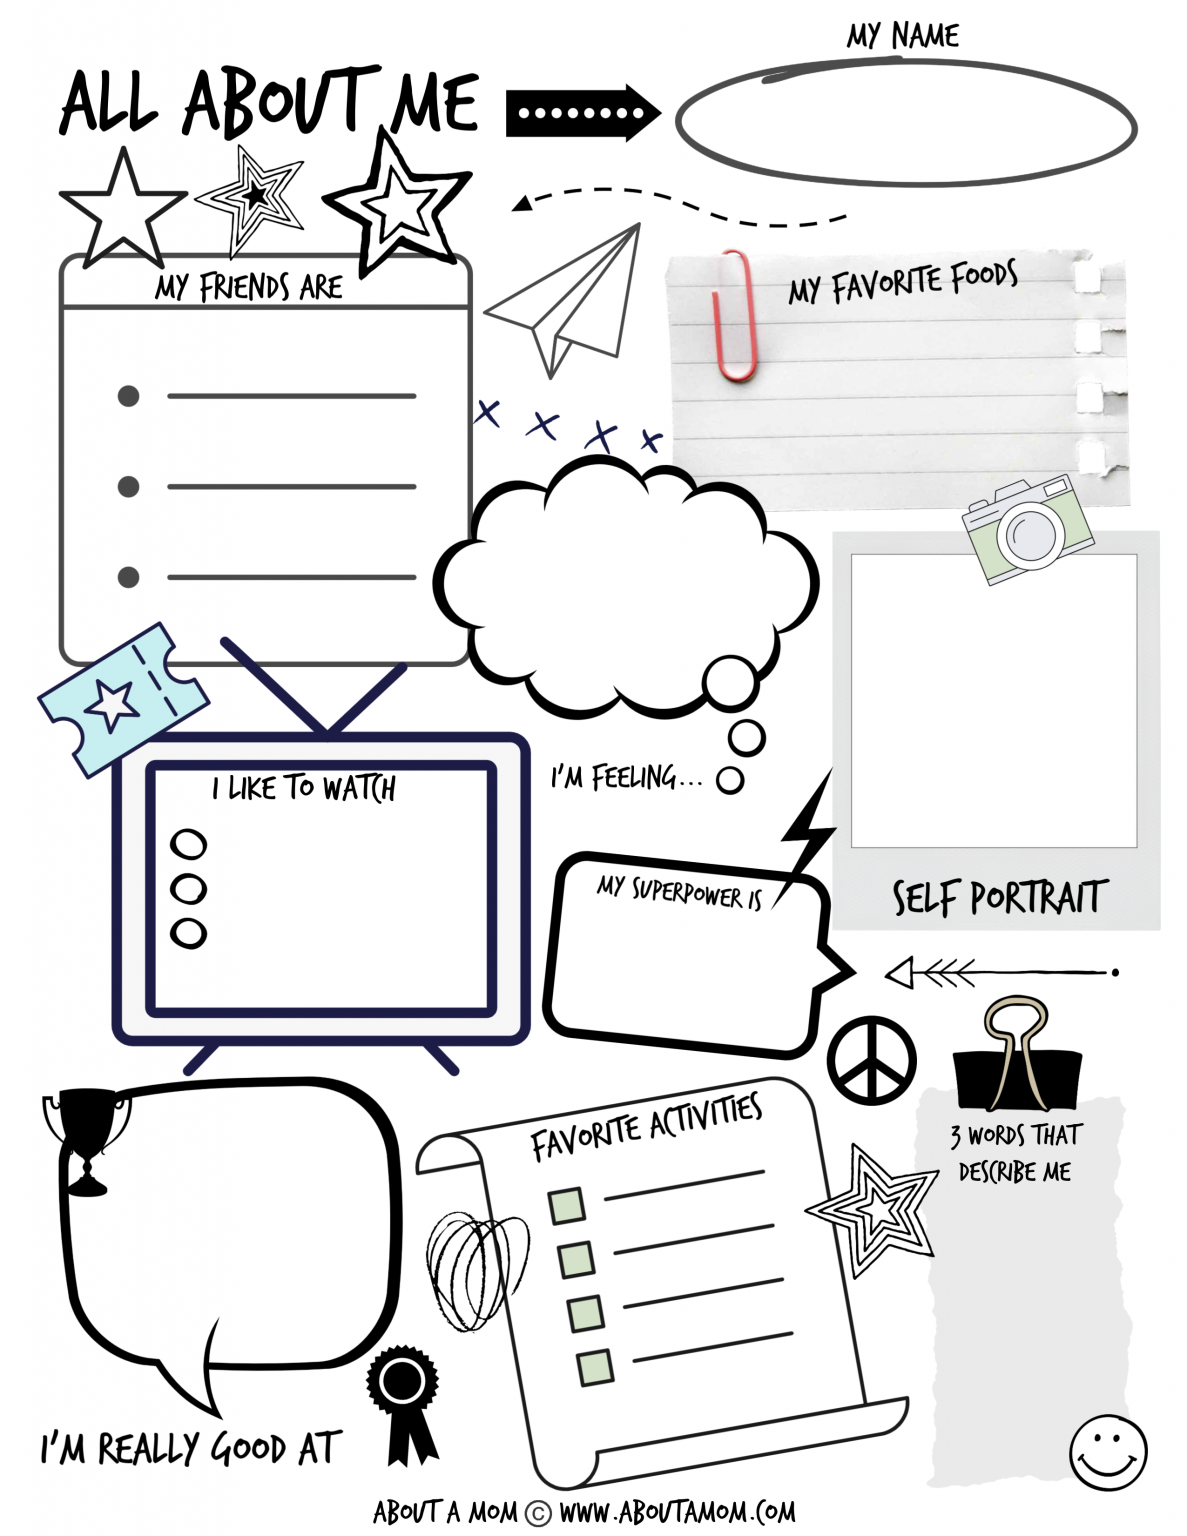 All About Me Printable Activity Page For Kids